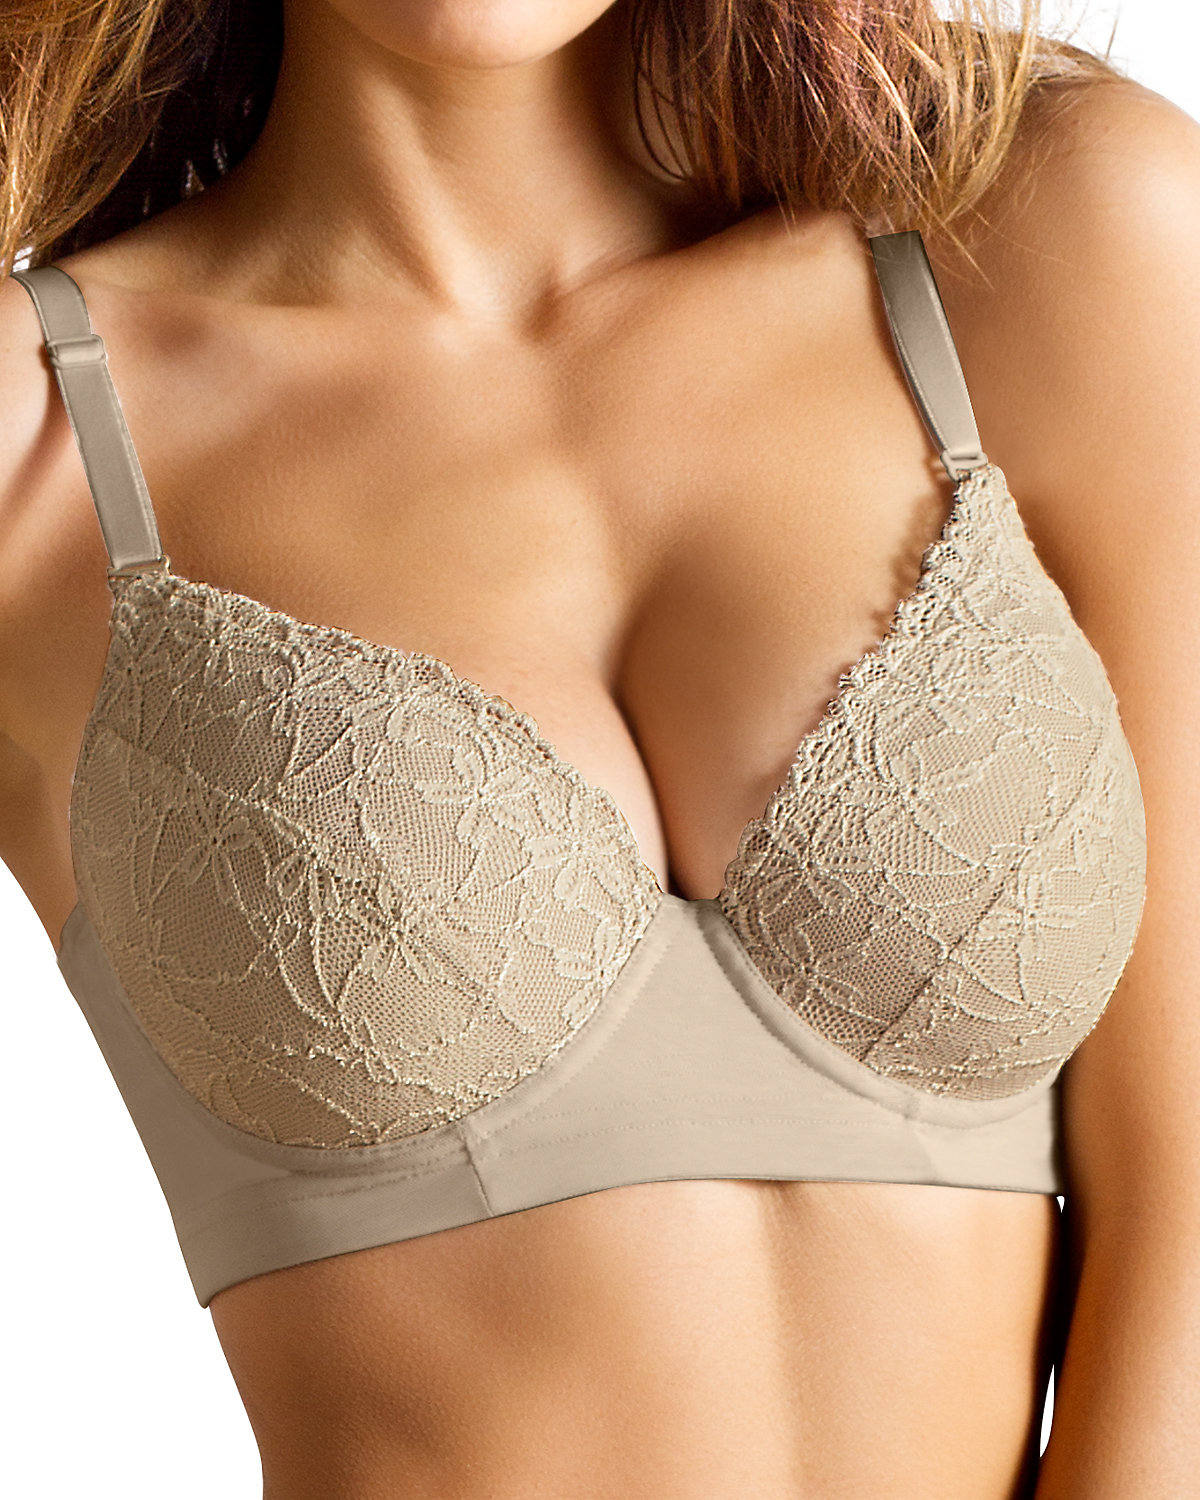 The Bali bras company offers bras that are especially designed for the full figured women. Some of the best in the Bali collections are: Bali minimizer bras, Bali comfort revolution bras and Bali concealers bras.